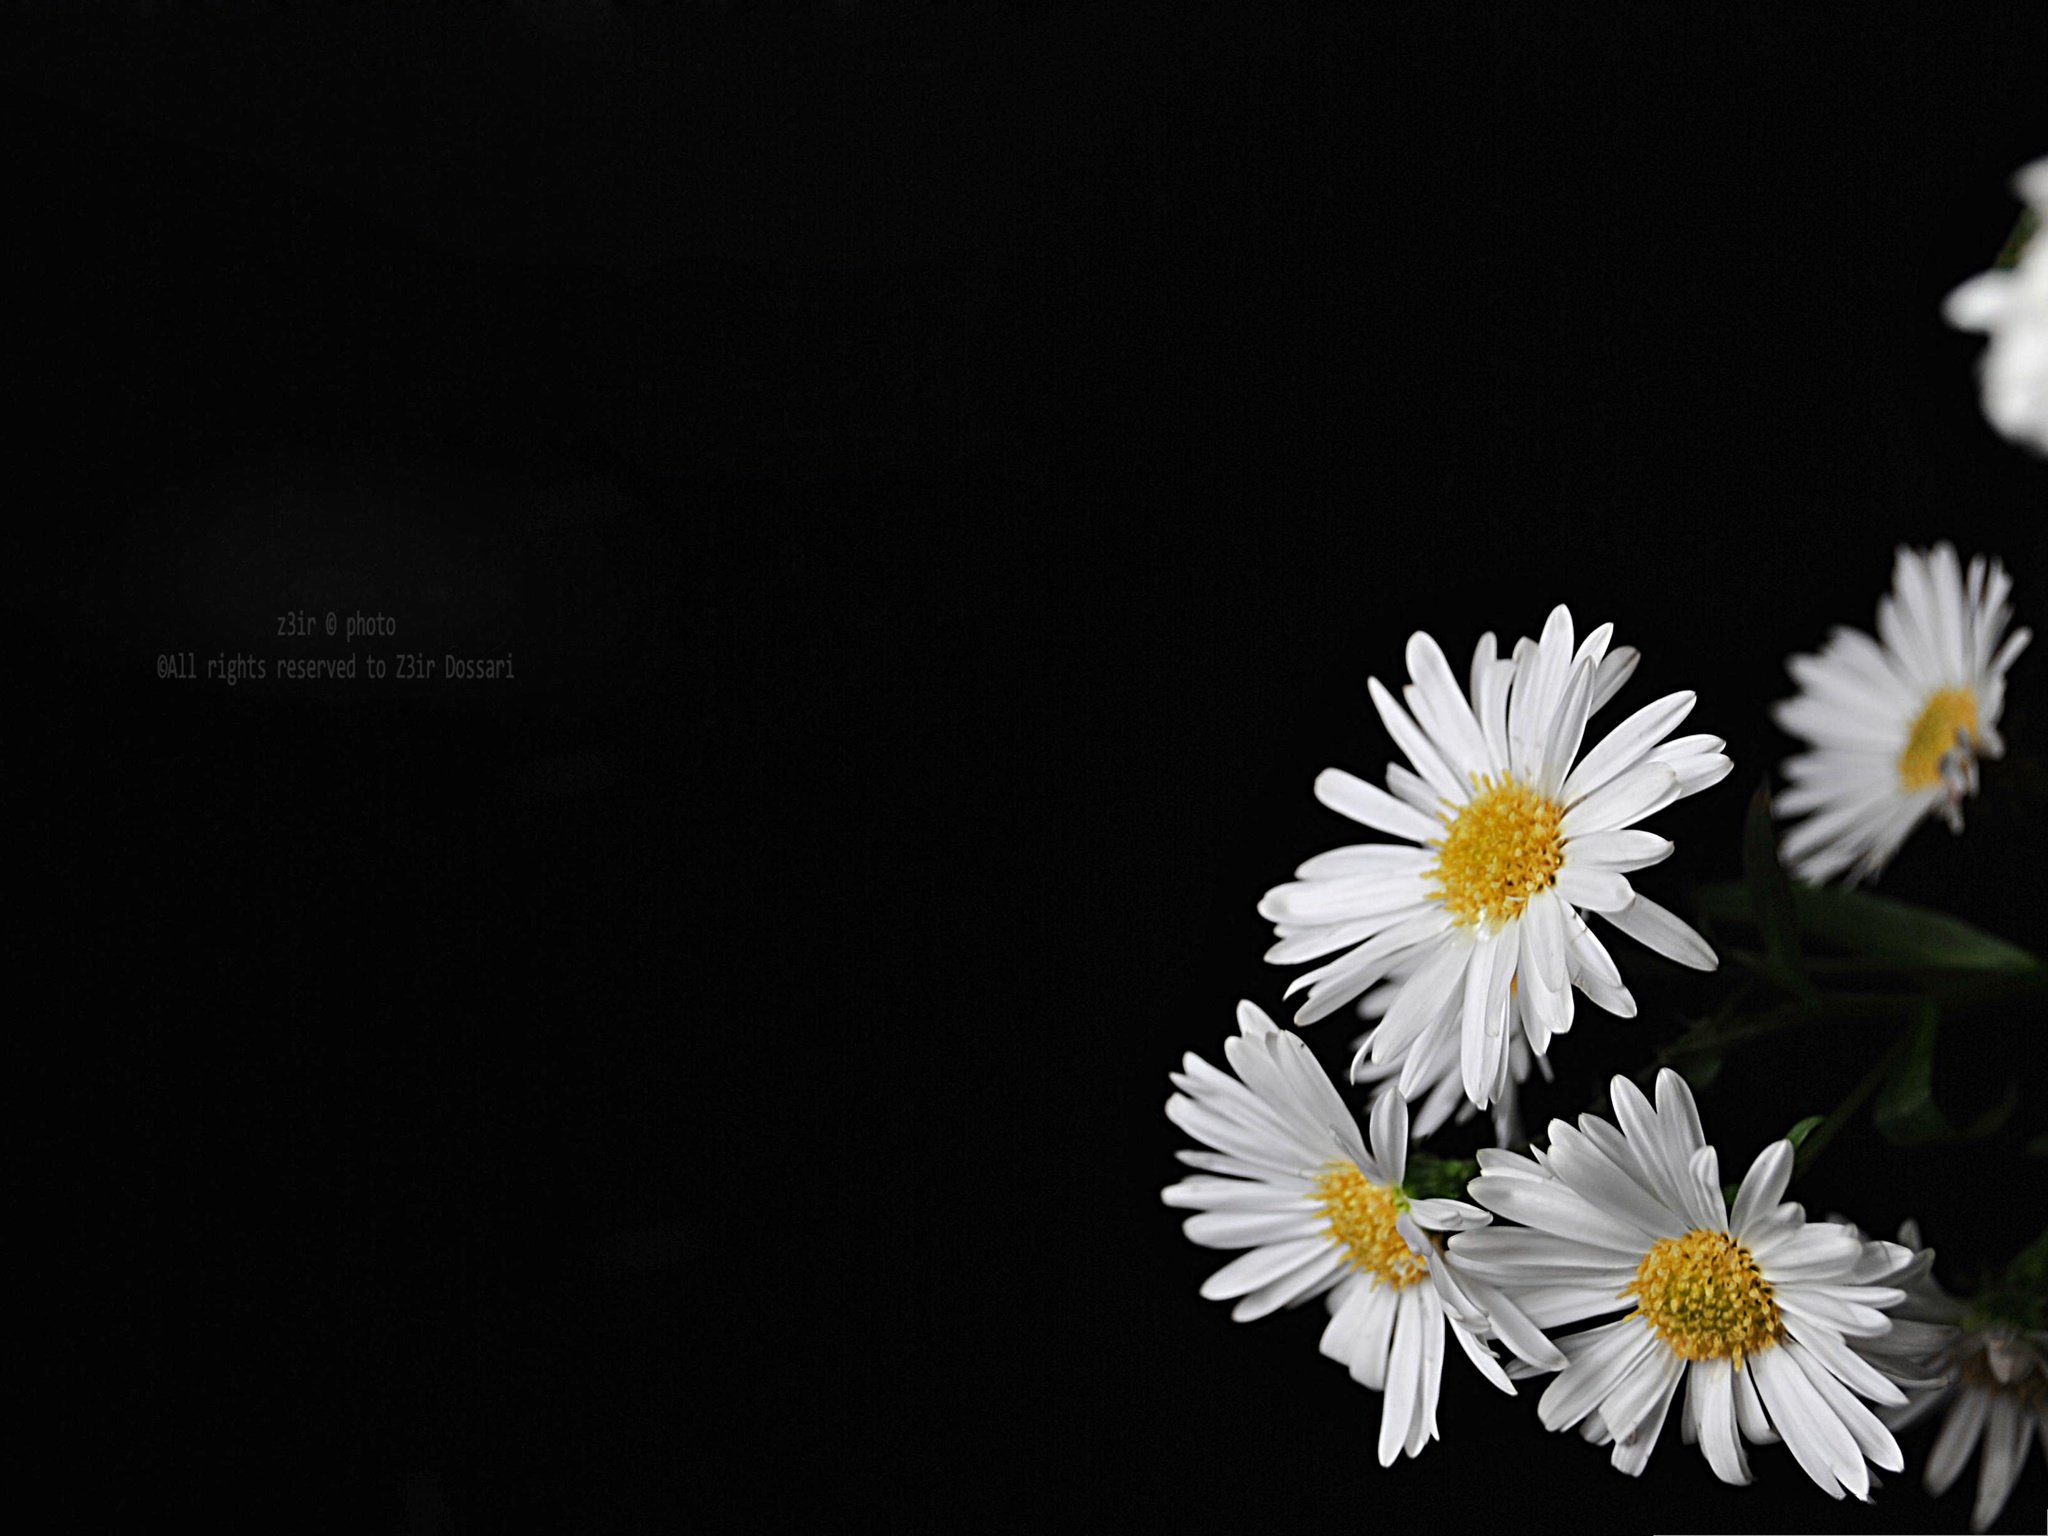 black background wallpaper with flowers wallpapersafari